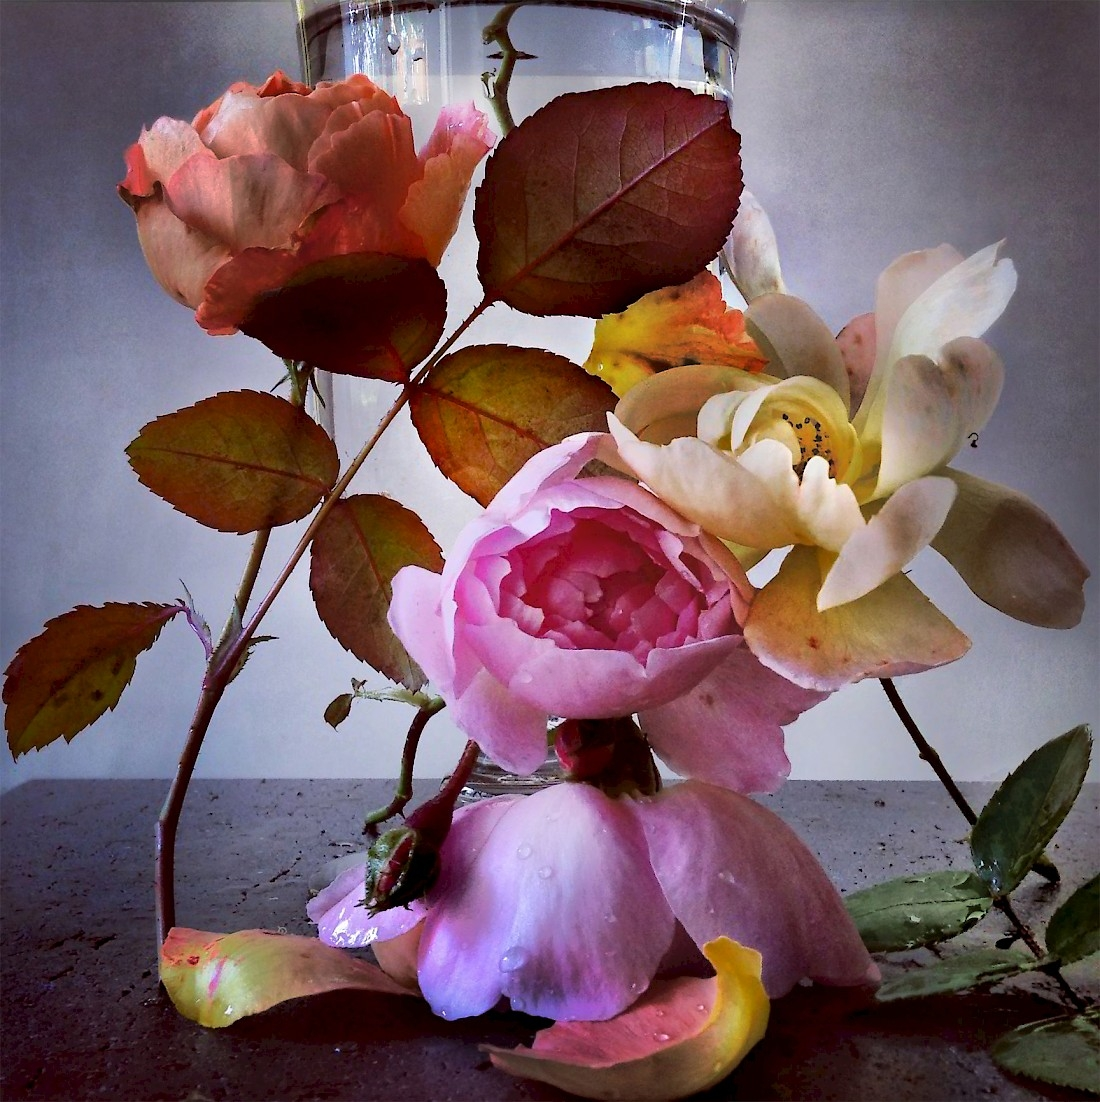 Roses, Nick Knight0x0